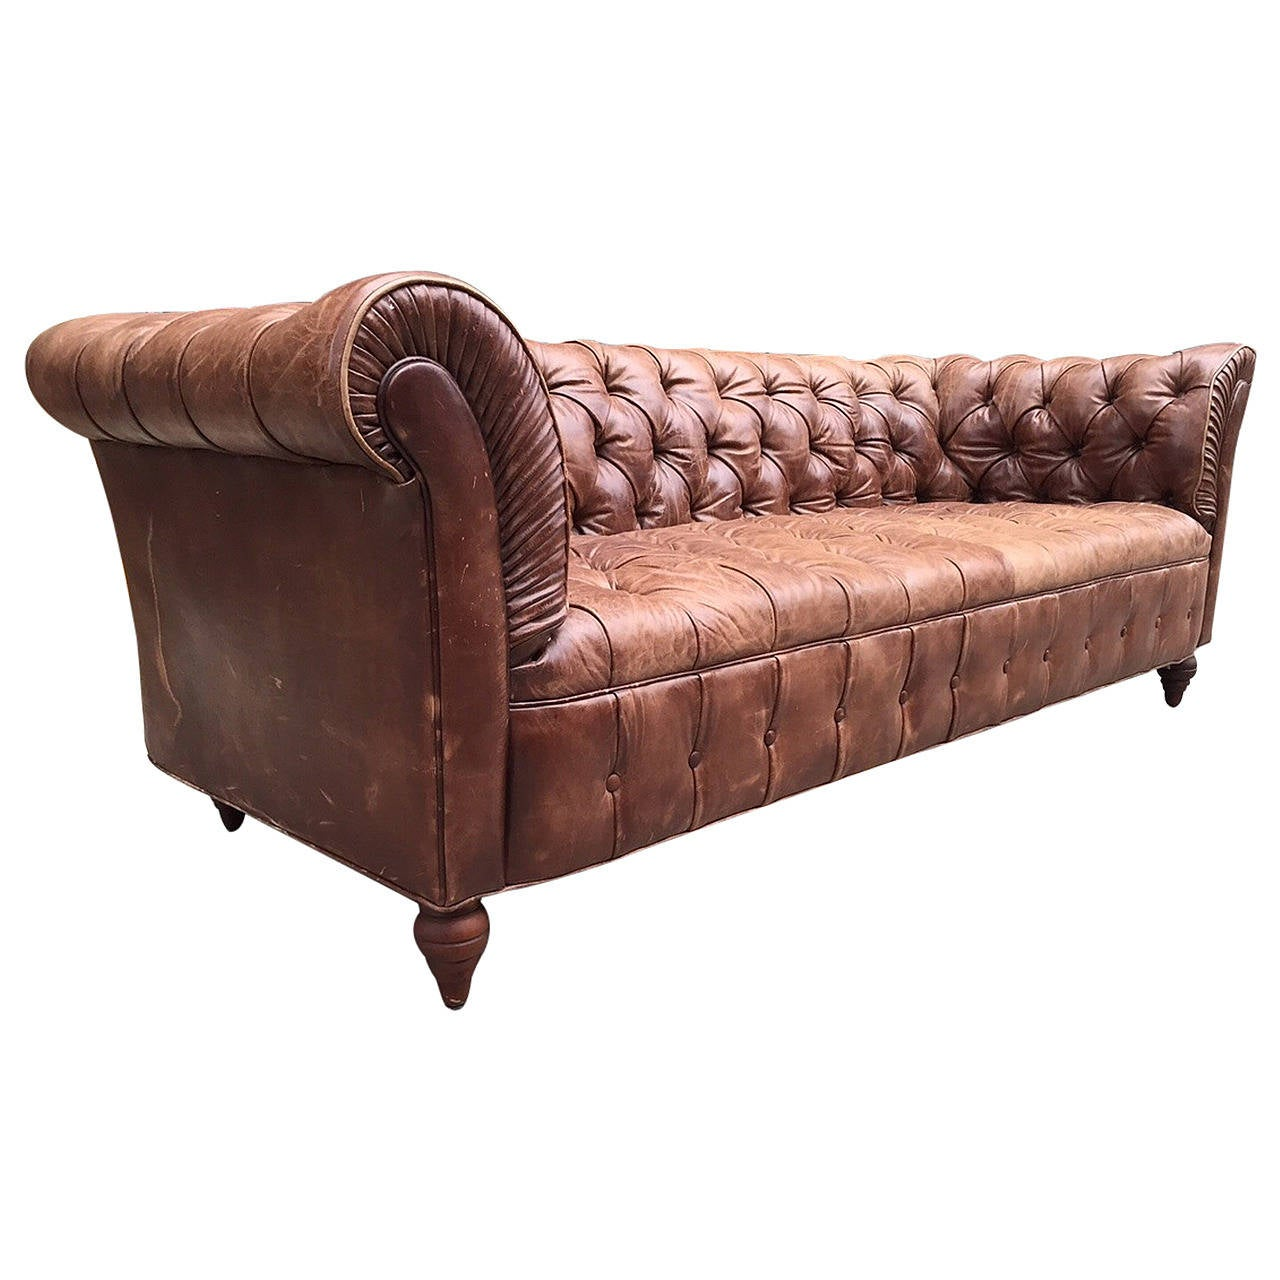 Vintage leather chesterfield sofa for sale at 1stdibs for Leather sofas for sale